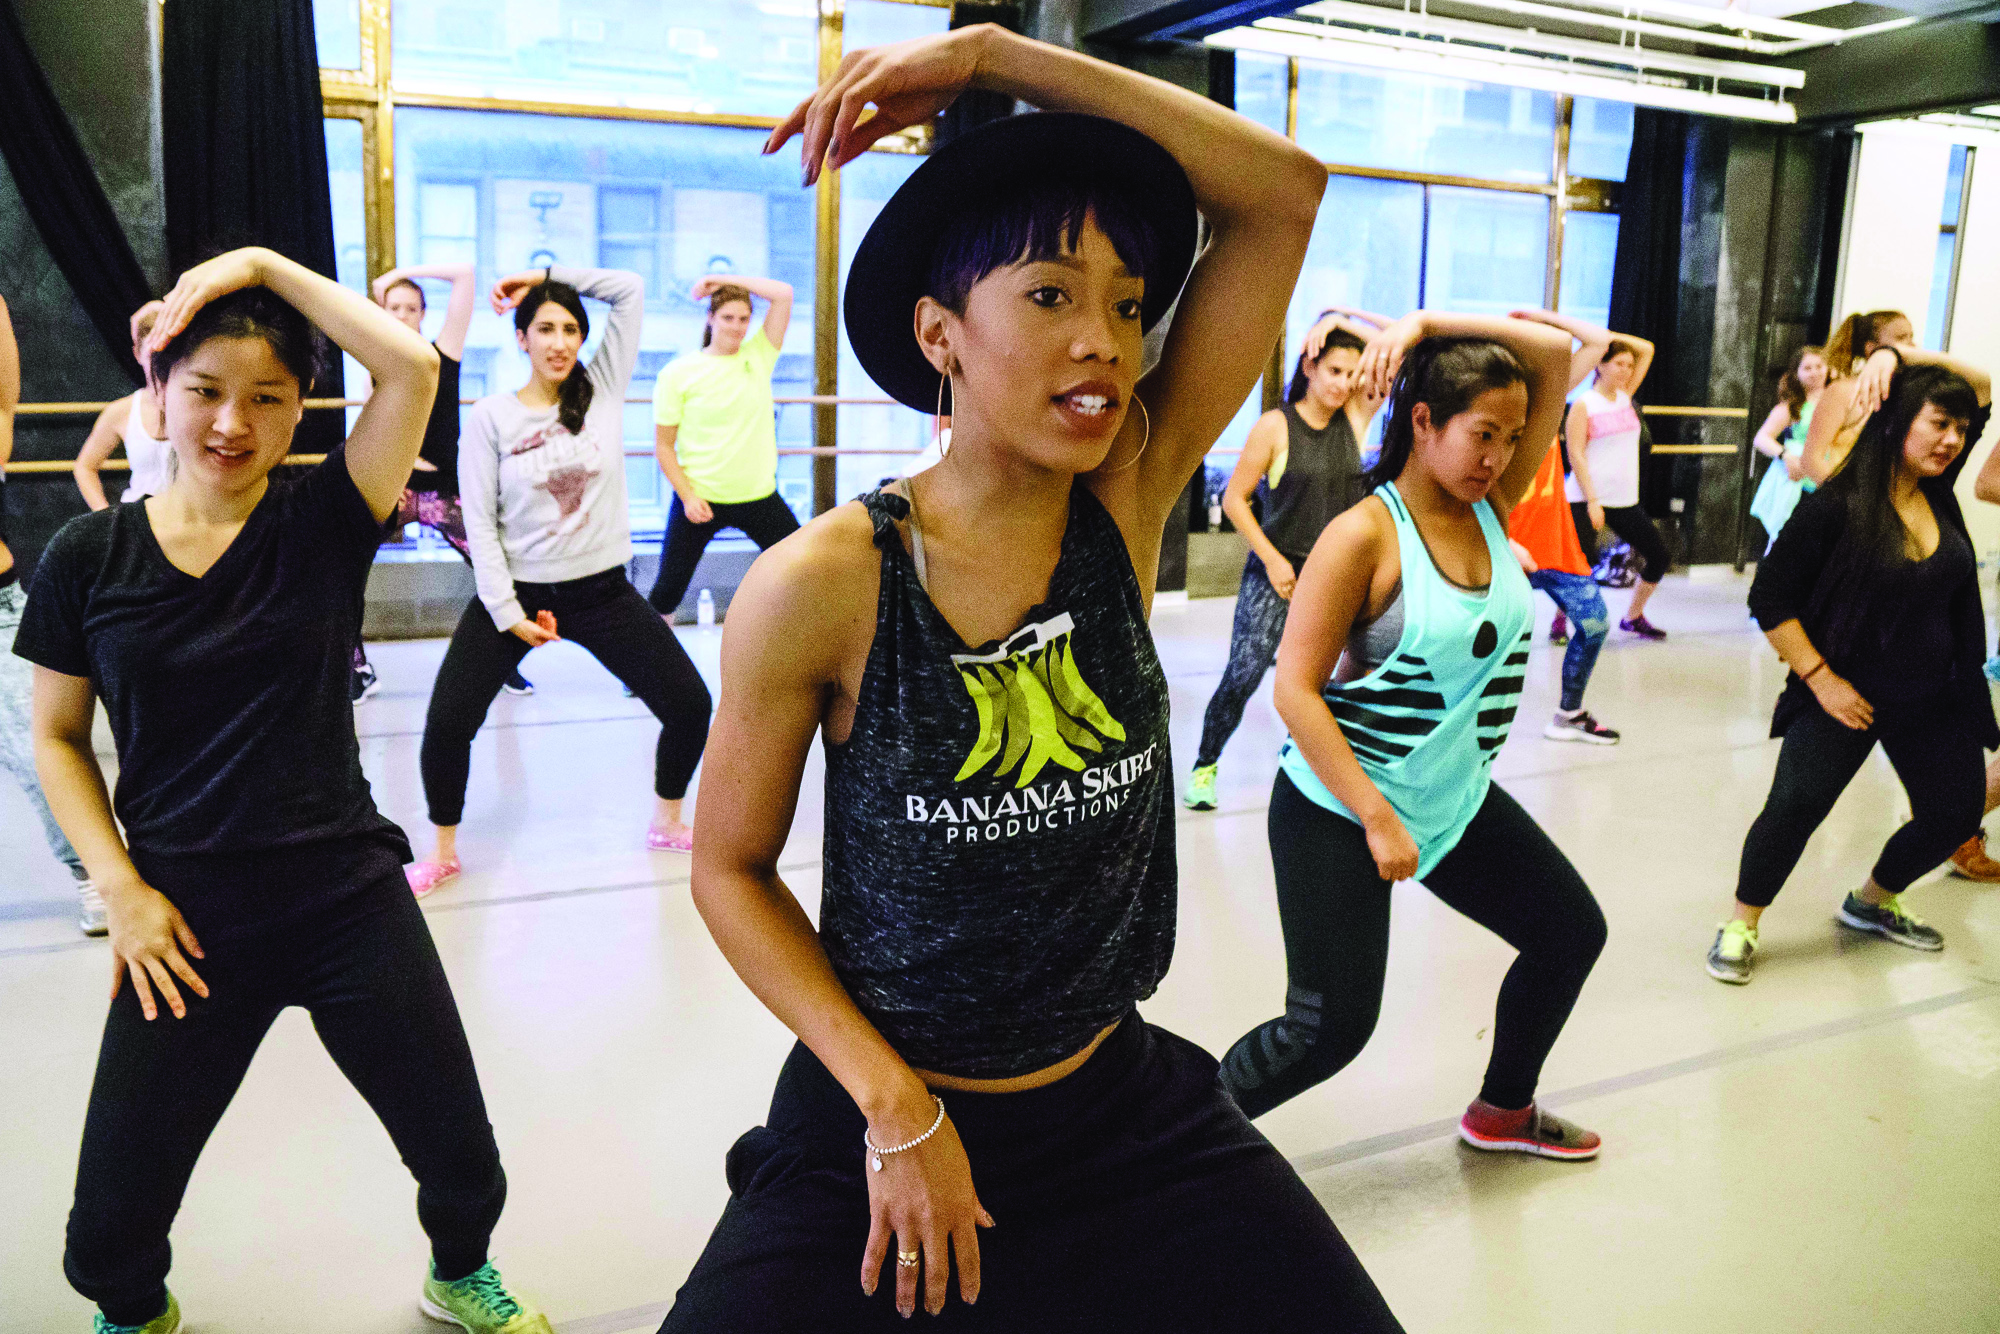 Lose Weight By Learning Your Favorite Stars Dance Moves